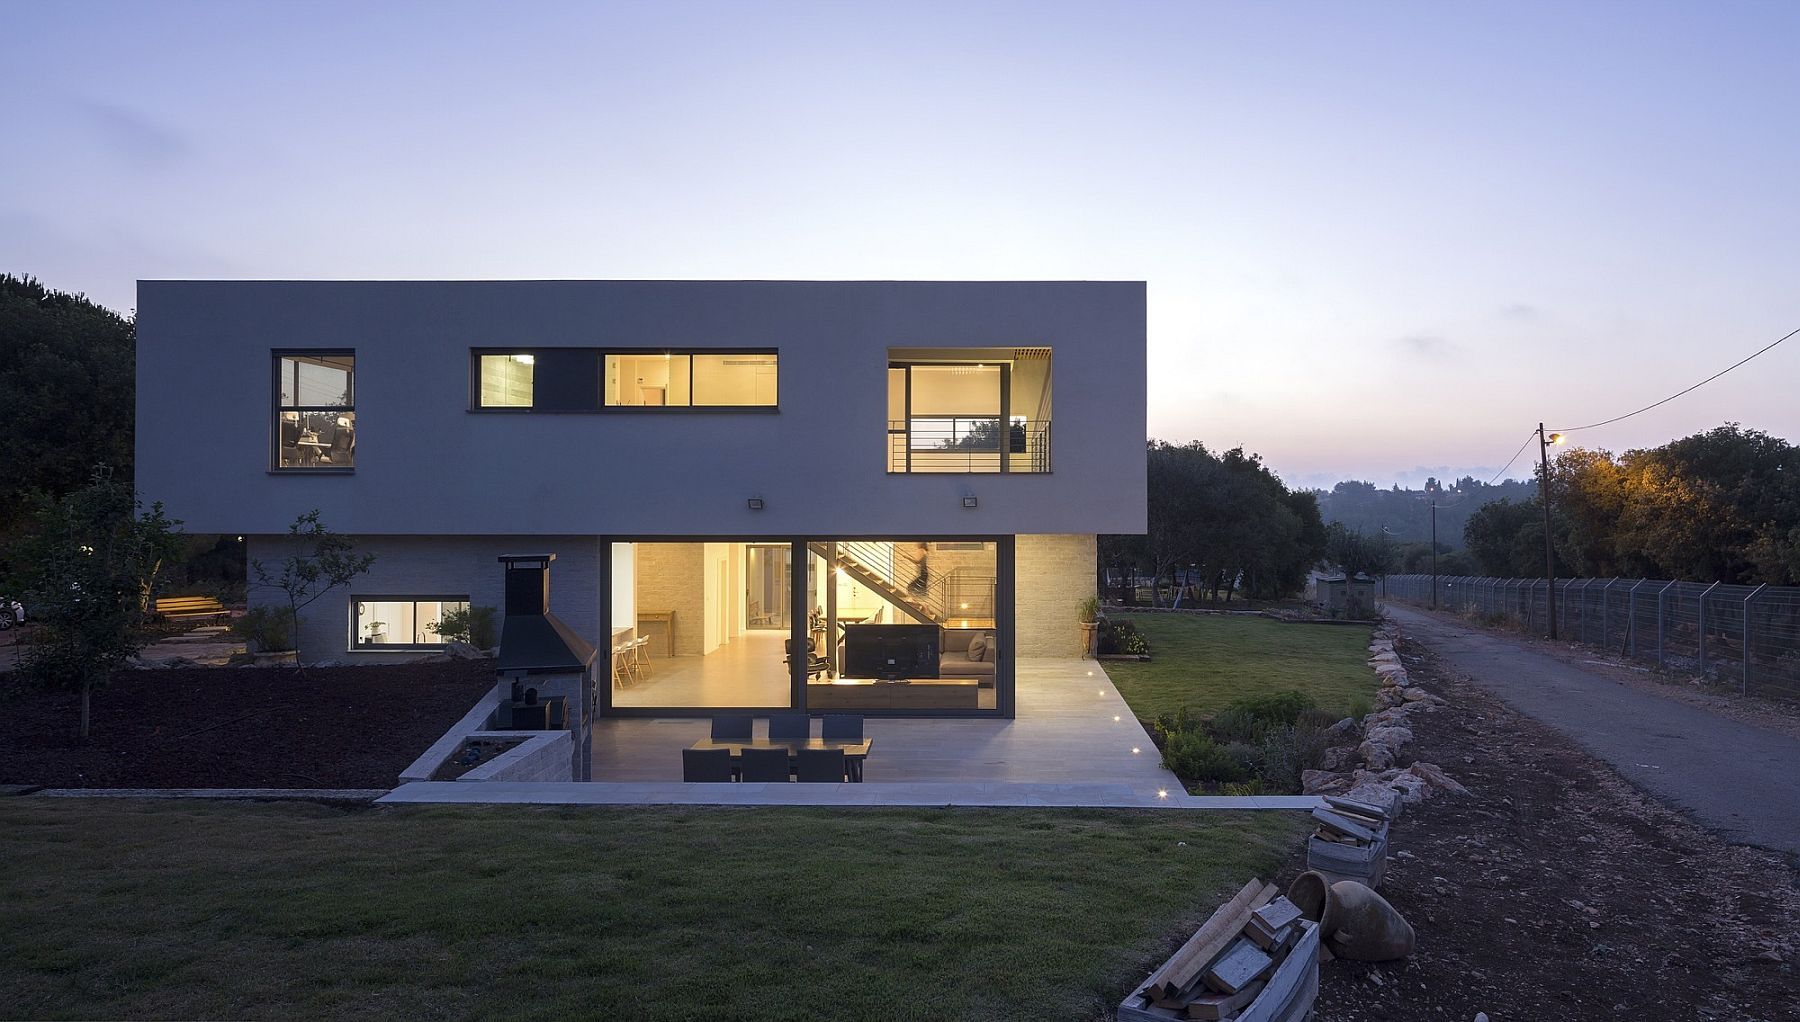 Cantilevered top section of the house gives it a cool sculptural vibe